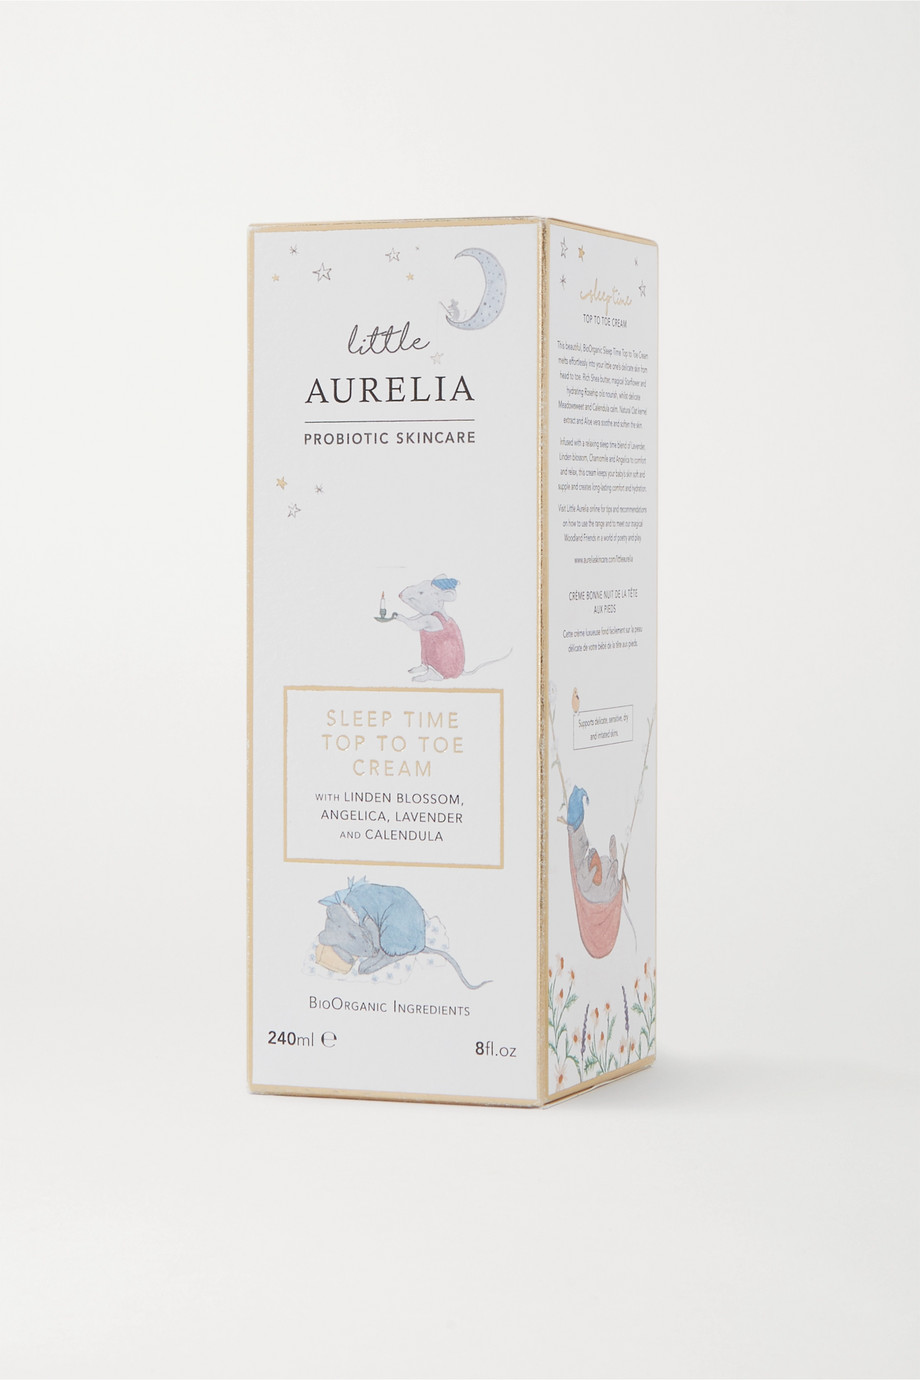 AURELIA PROBIOTIC SKINCARE Little Aurelia Sleep Time Top to Toe Cream, 240ml